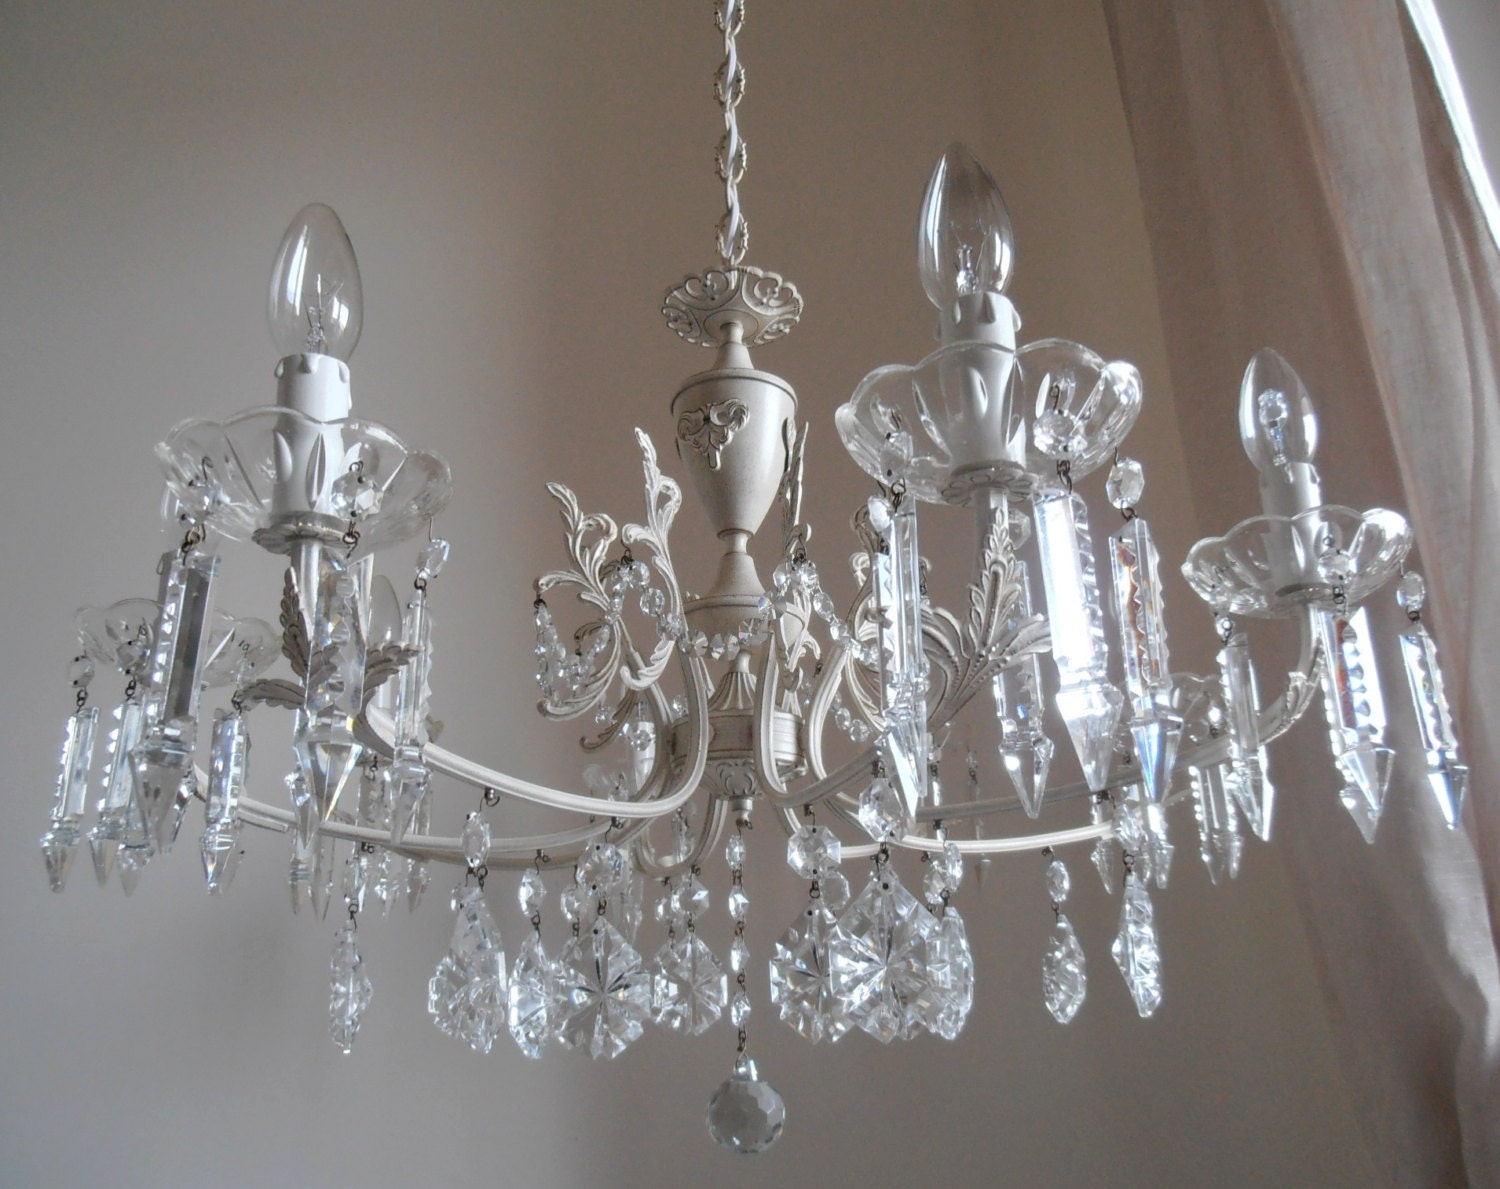 shabby chic chandelier 8 arms crystal chandelier cream. Black Bedroom Furniture Sets. Home Design Ideas